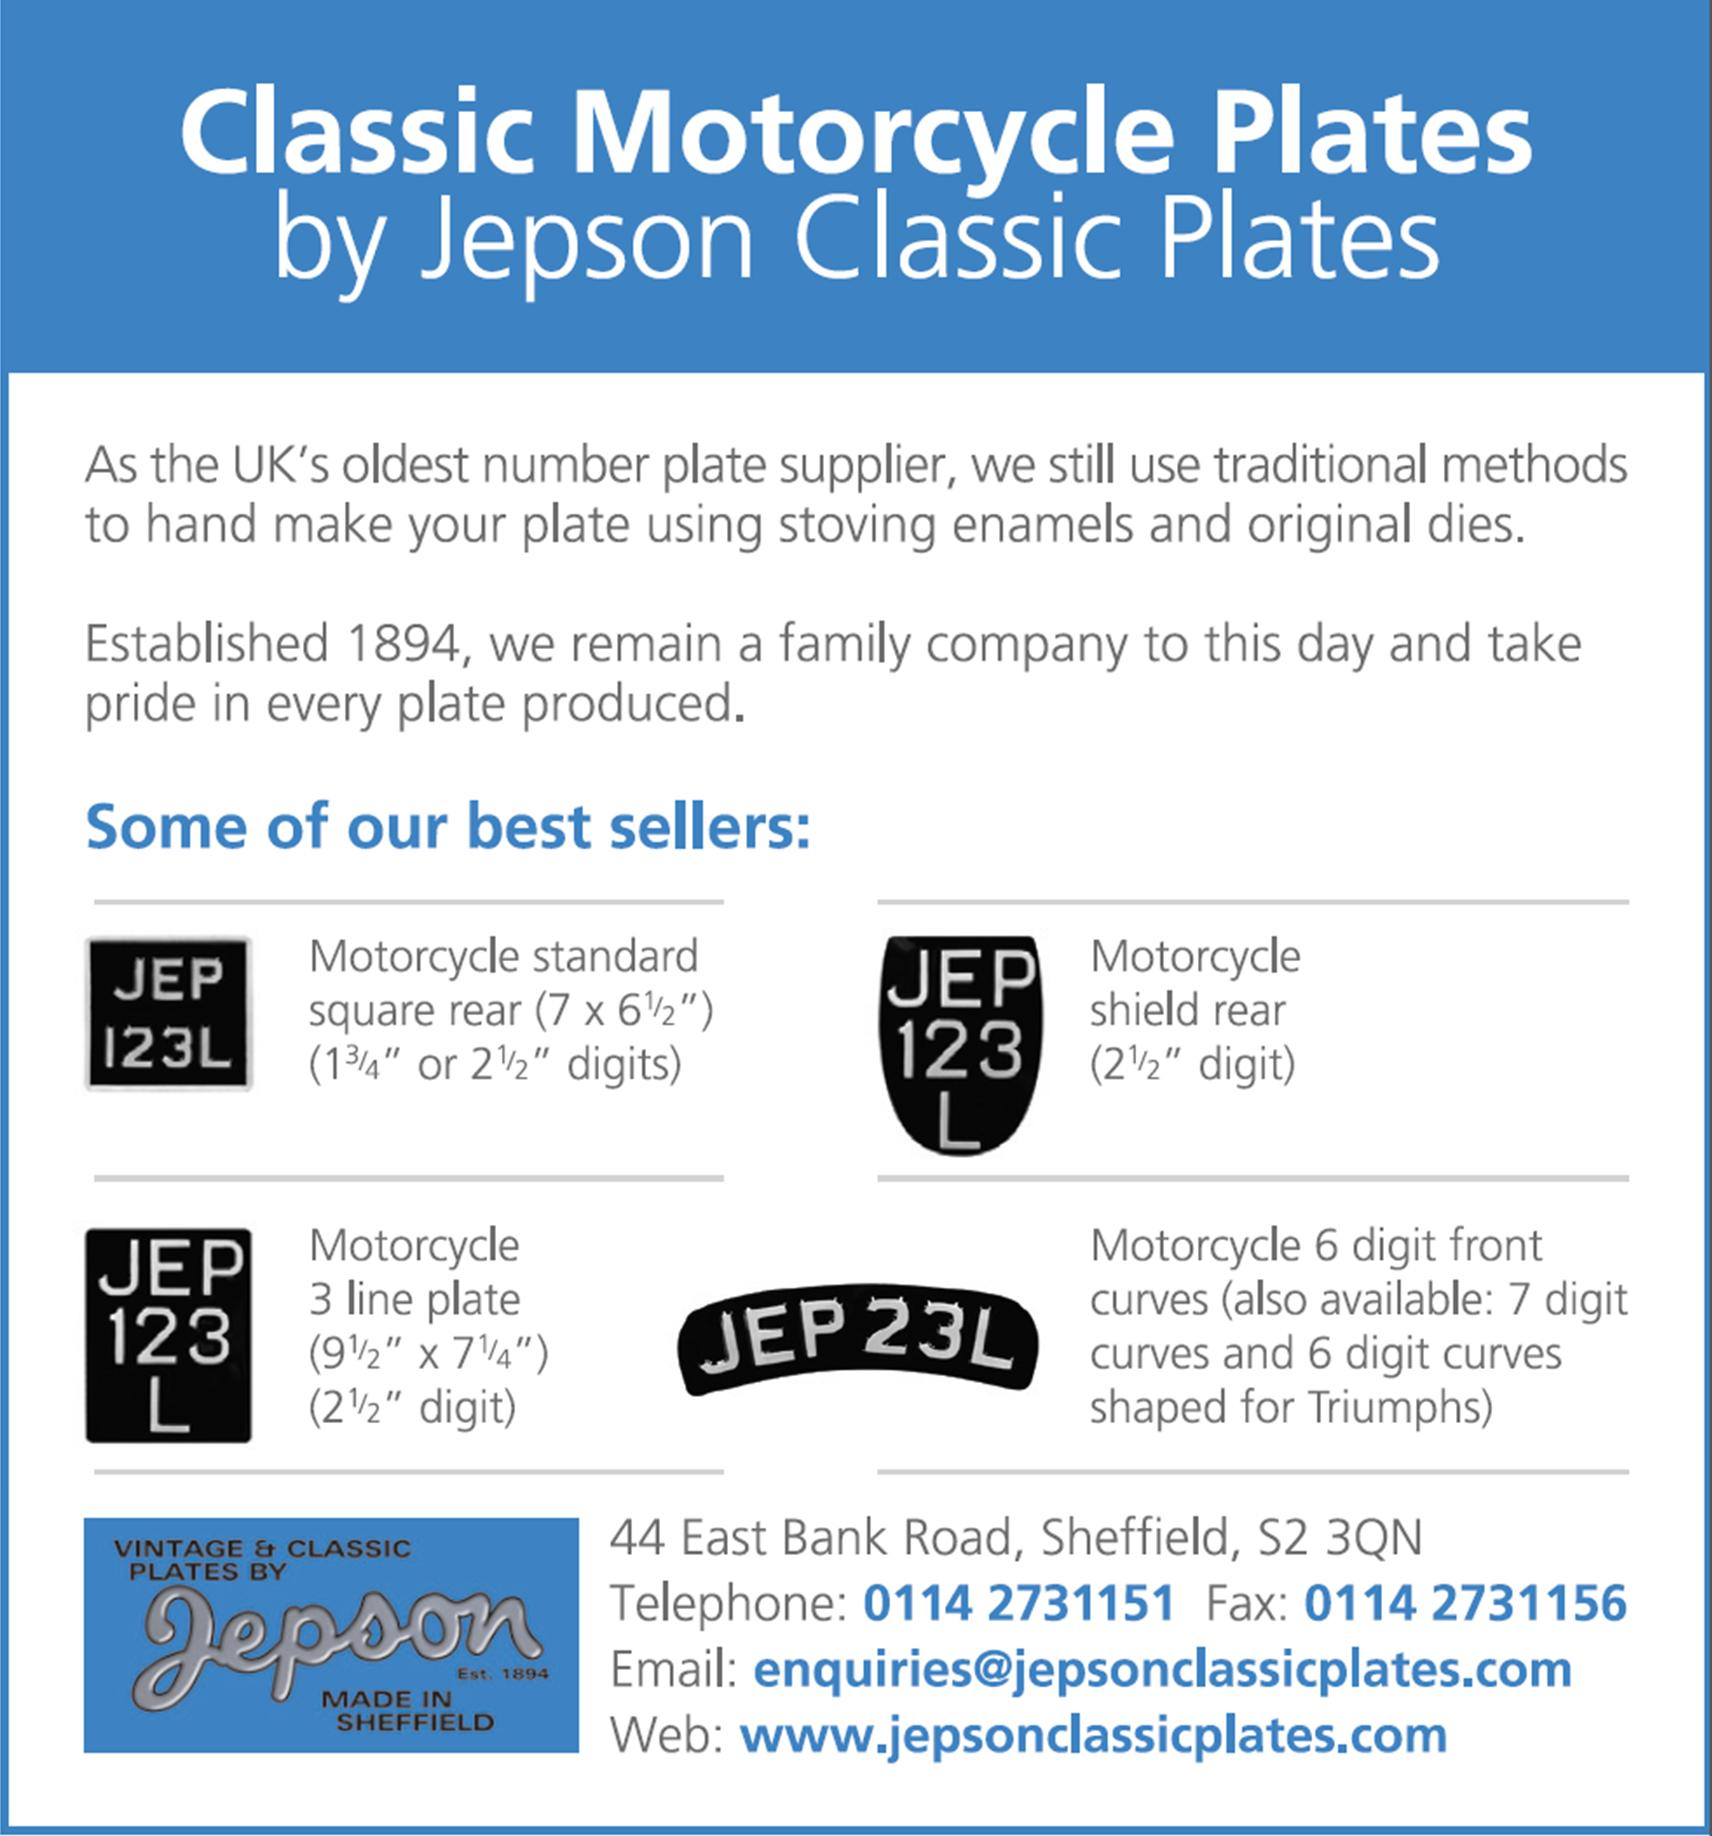 VMCC classic and vintage motorcycles parts and accessories - Number ...